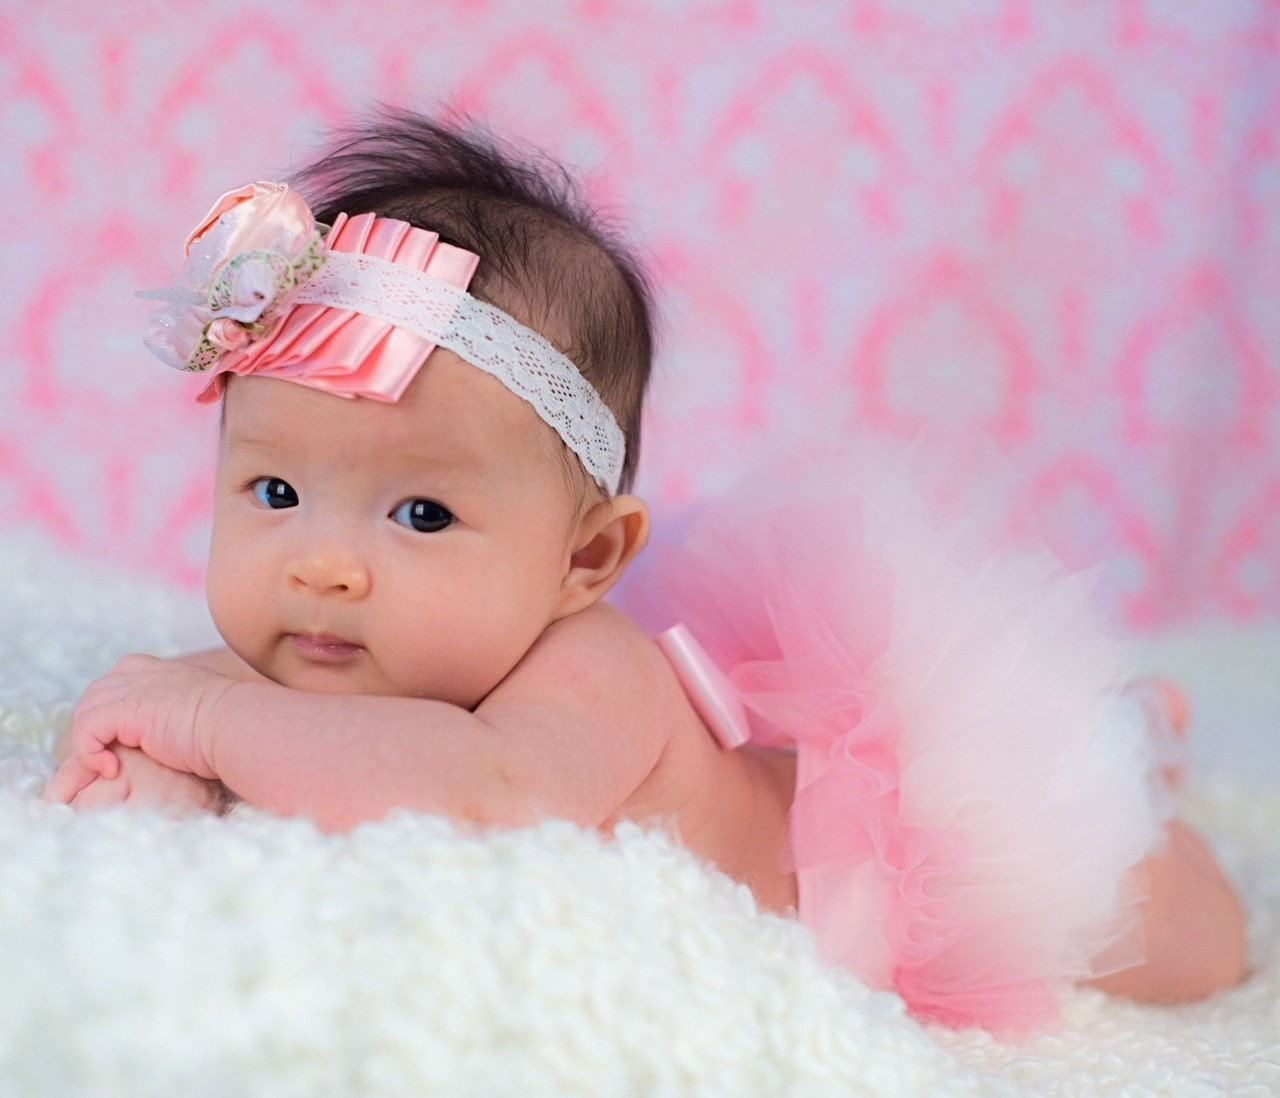 You searched for: baby girl tutus! Etsy is the home to thousands of handmade, vintage, and one-of-a-kind products and gifts related to your search. No matter what you're looking for or where you are in the world, our global marketplace of sellers can help you find unique and affordable options. Let's get started!